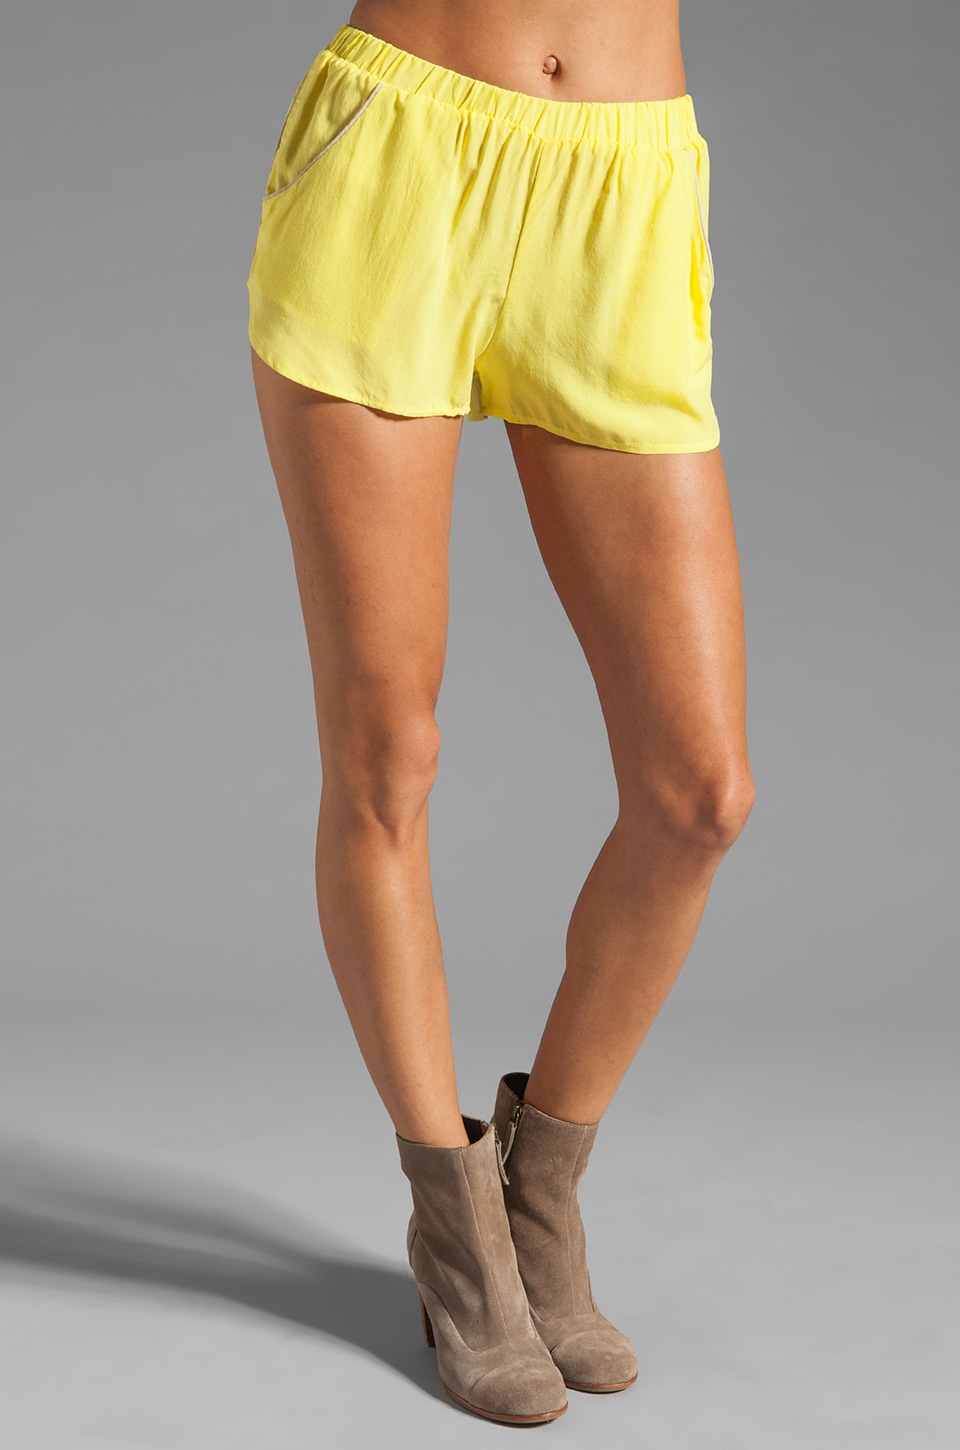 SAM&LAVI Yuri Short in Bright Lime